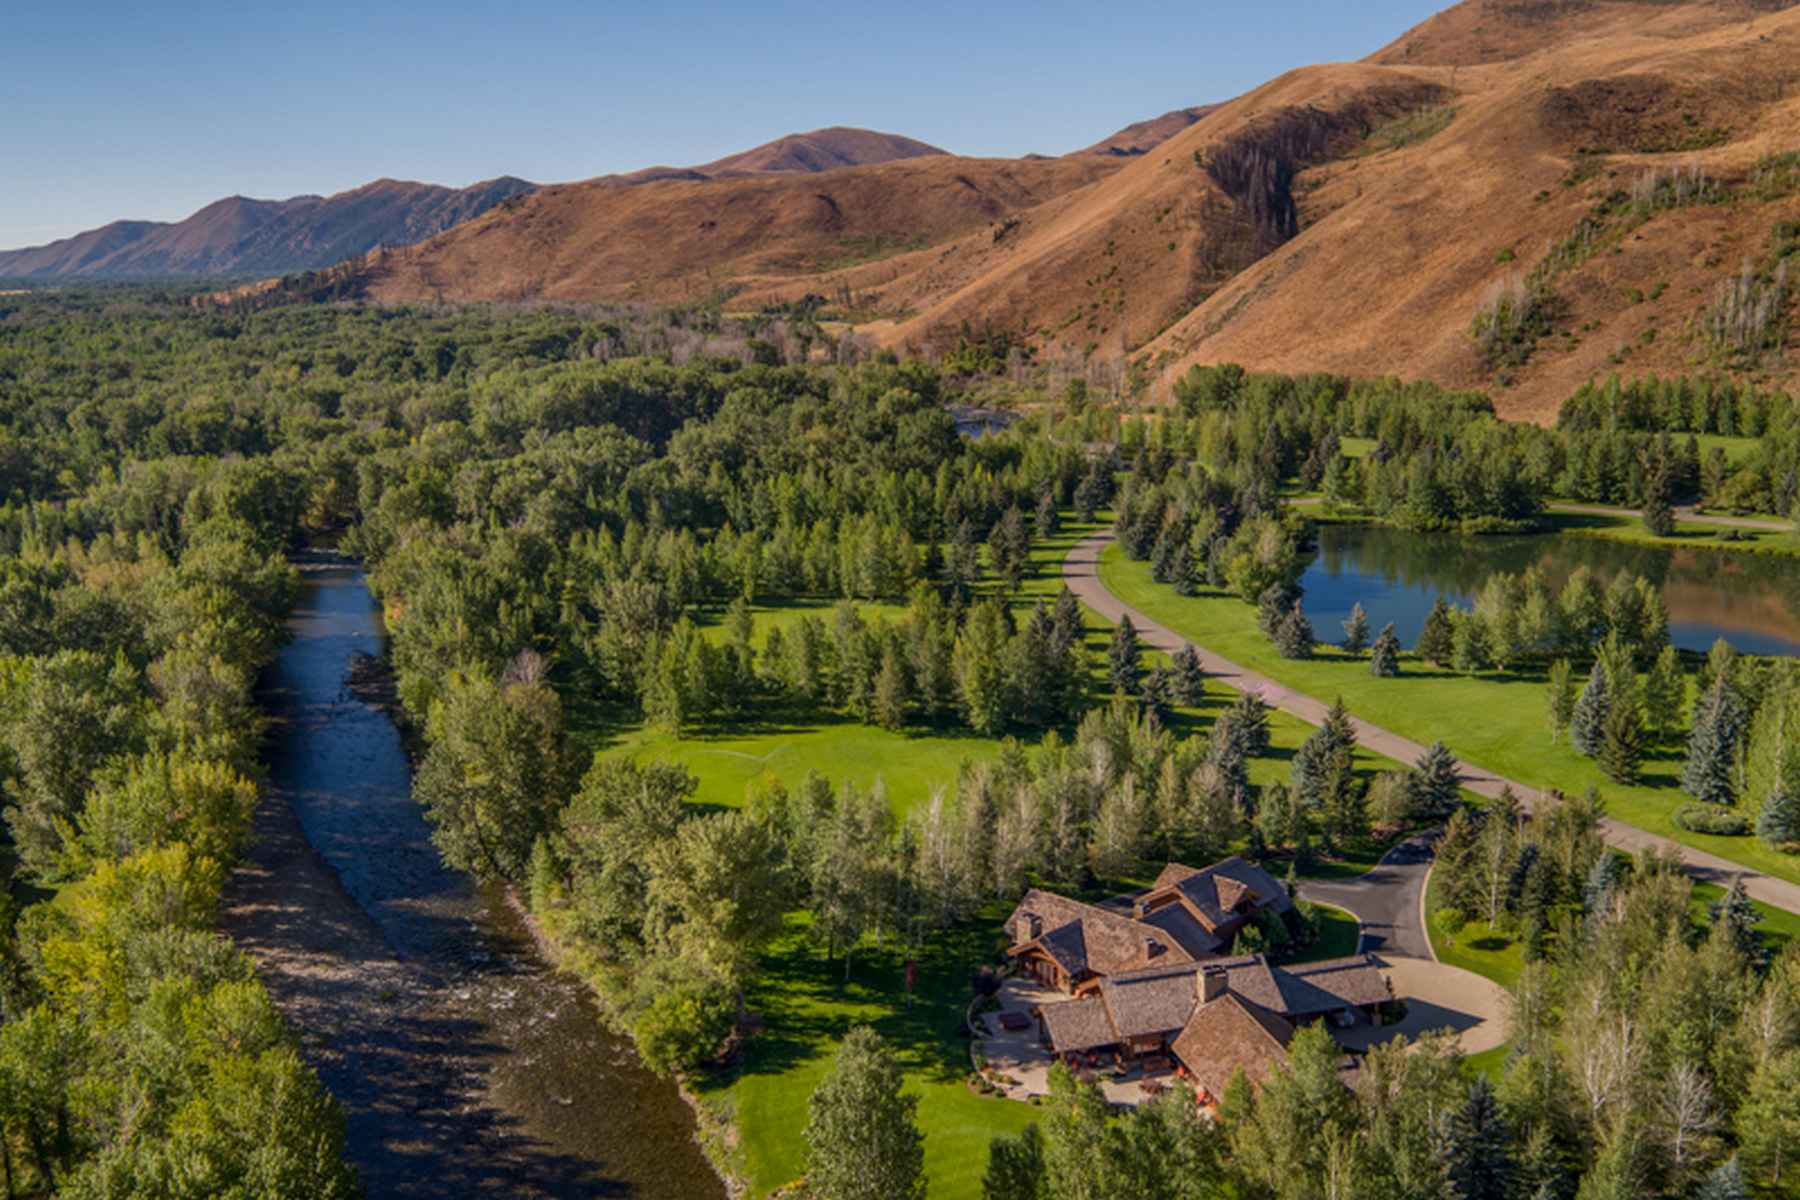 Casa Unifamiliar por un Venta en On The River In Golden Eagle 180 S Golden Eagle Dr, Mid Valley, Ketchum, Idaho, 83340 Estados Unidos